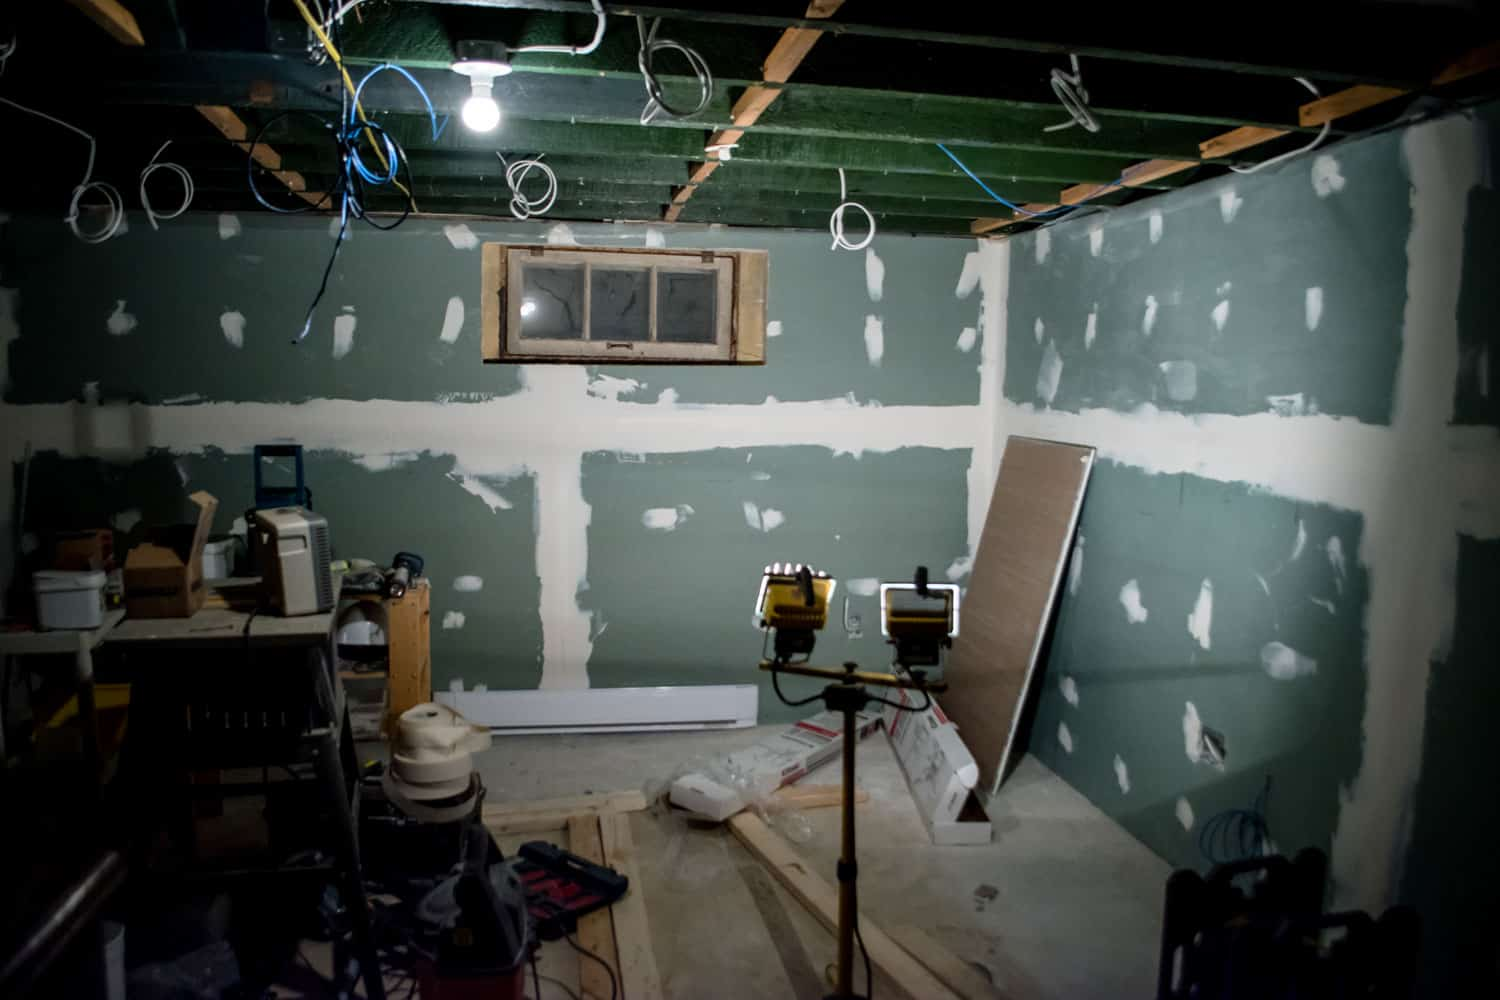 Unfinished basement with visible wires and unpainted drywall board sidings